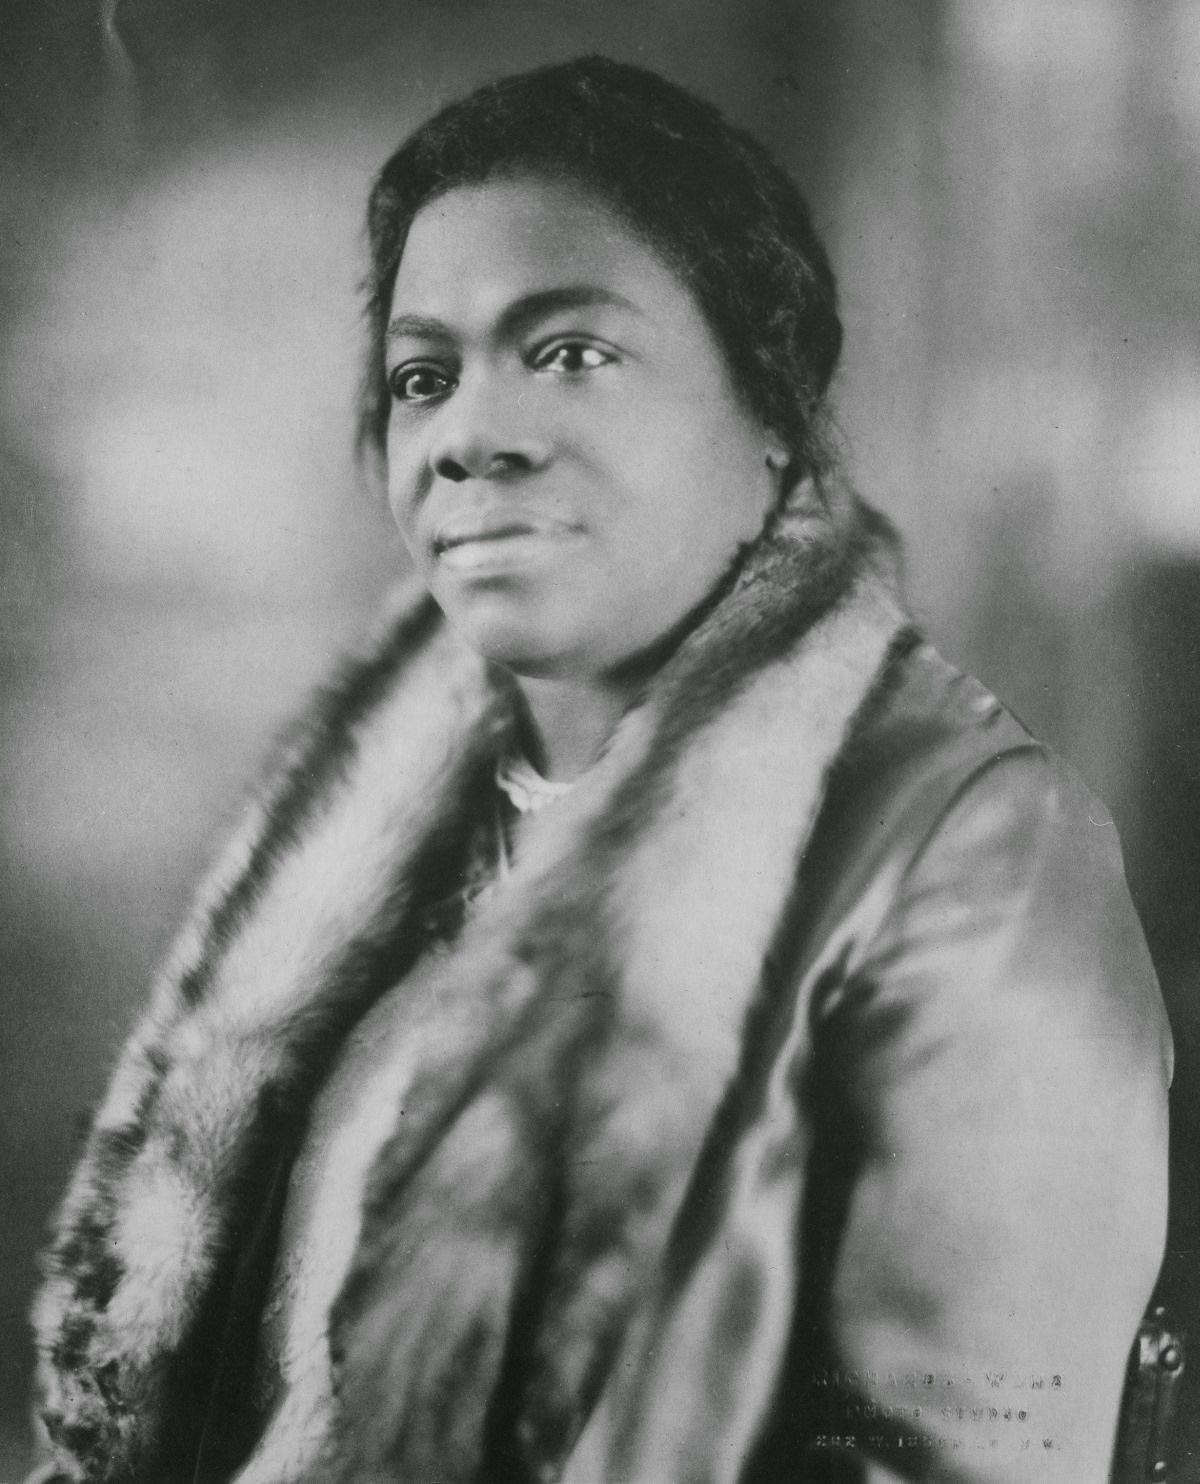 mary mcleod bethunes pioneering work in black education Mary mcleod bethune's work in florida and the united states opened doors for all african americans, but particularly for women, and enhanced the lives of all people who needed an advocate the first of her parents' children born after the emancipation proclamation, she understood from an early age the value of education and a free mind.